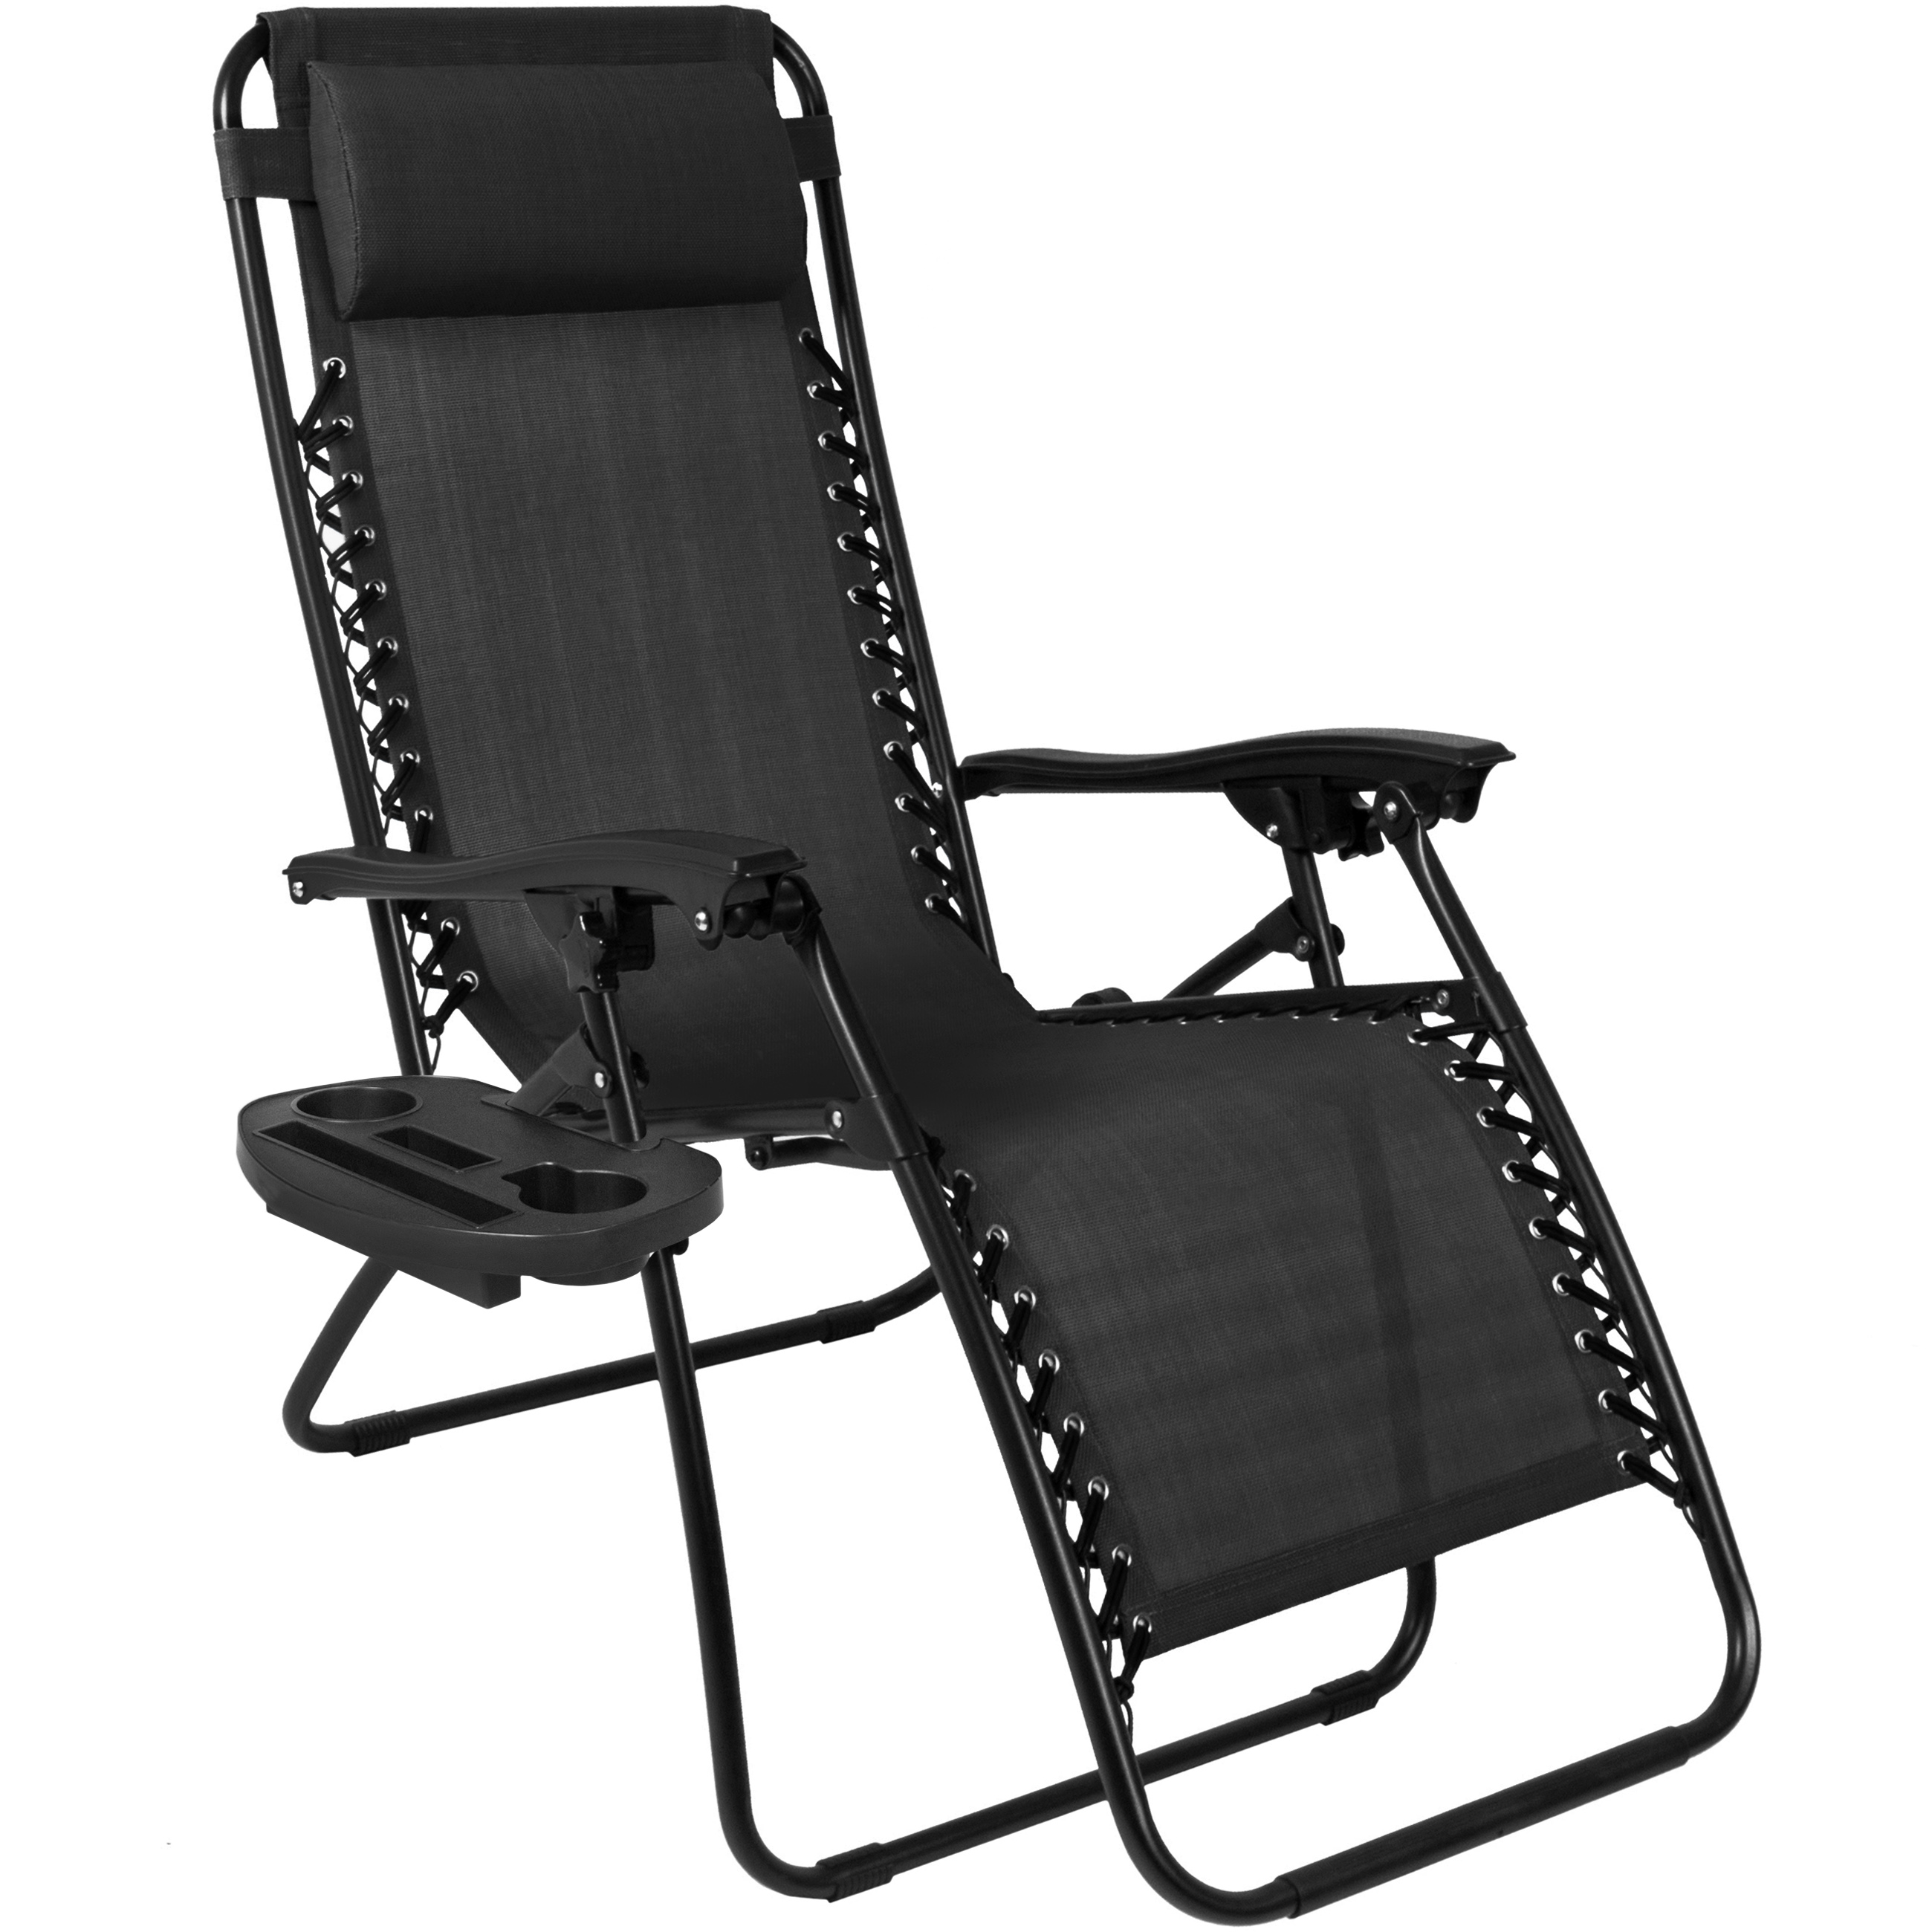 Zero gravity chairs case of 2 black lounge patio chairs utility pool tray cup holders walmart com